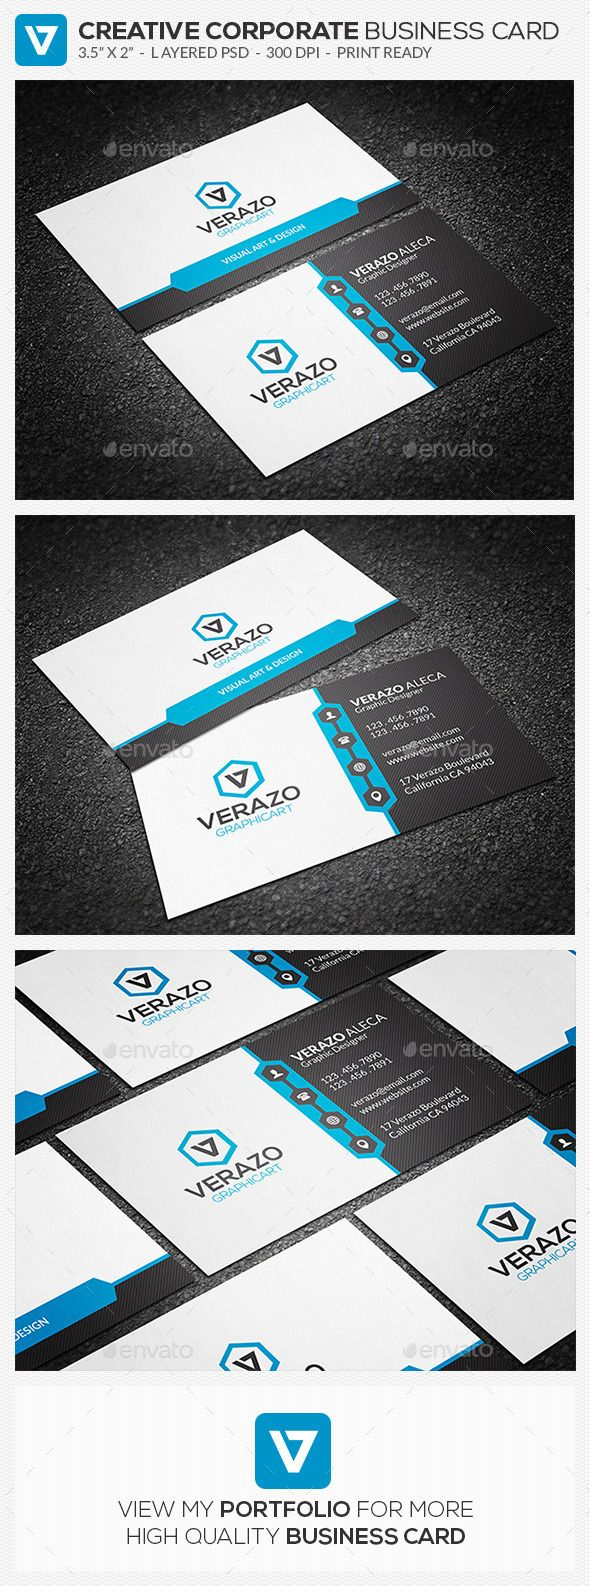 22 best business card ideas images on Pinterest | Card ideas ...